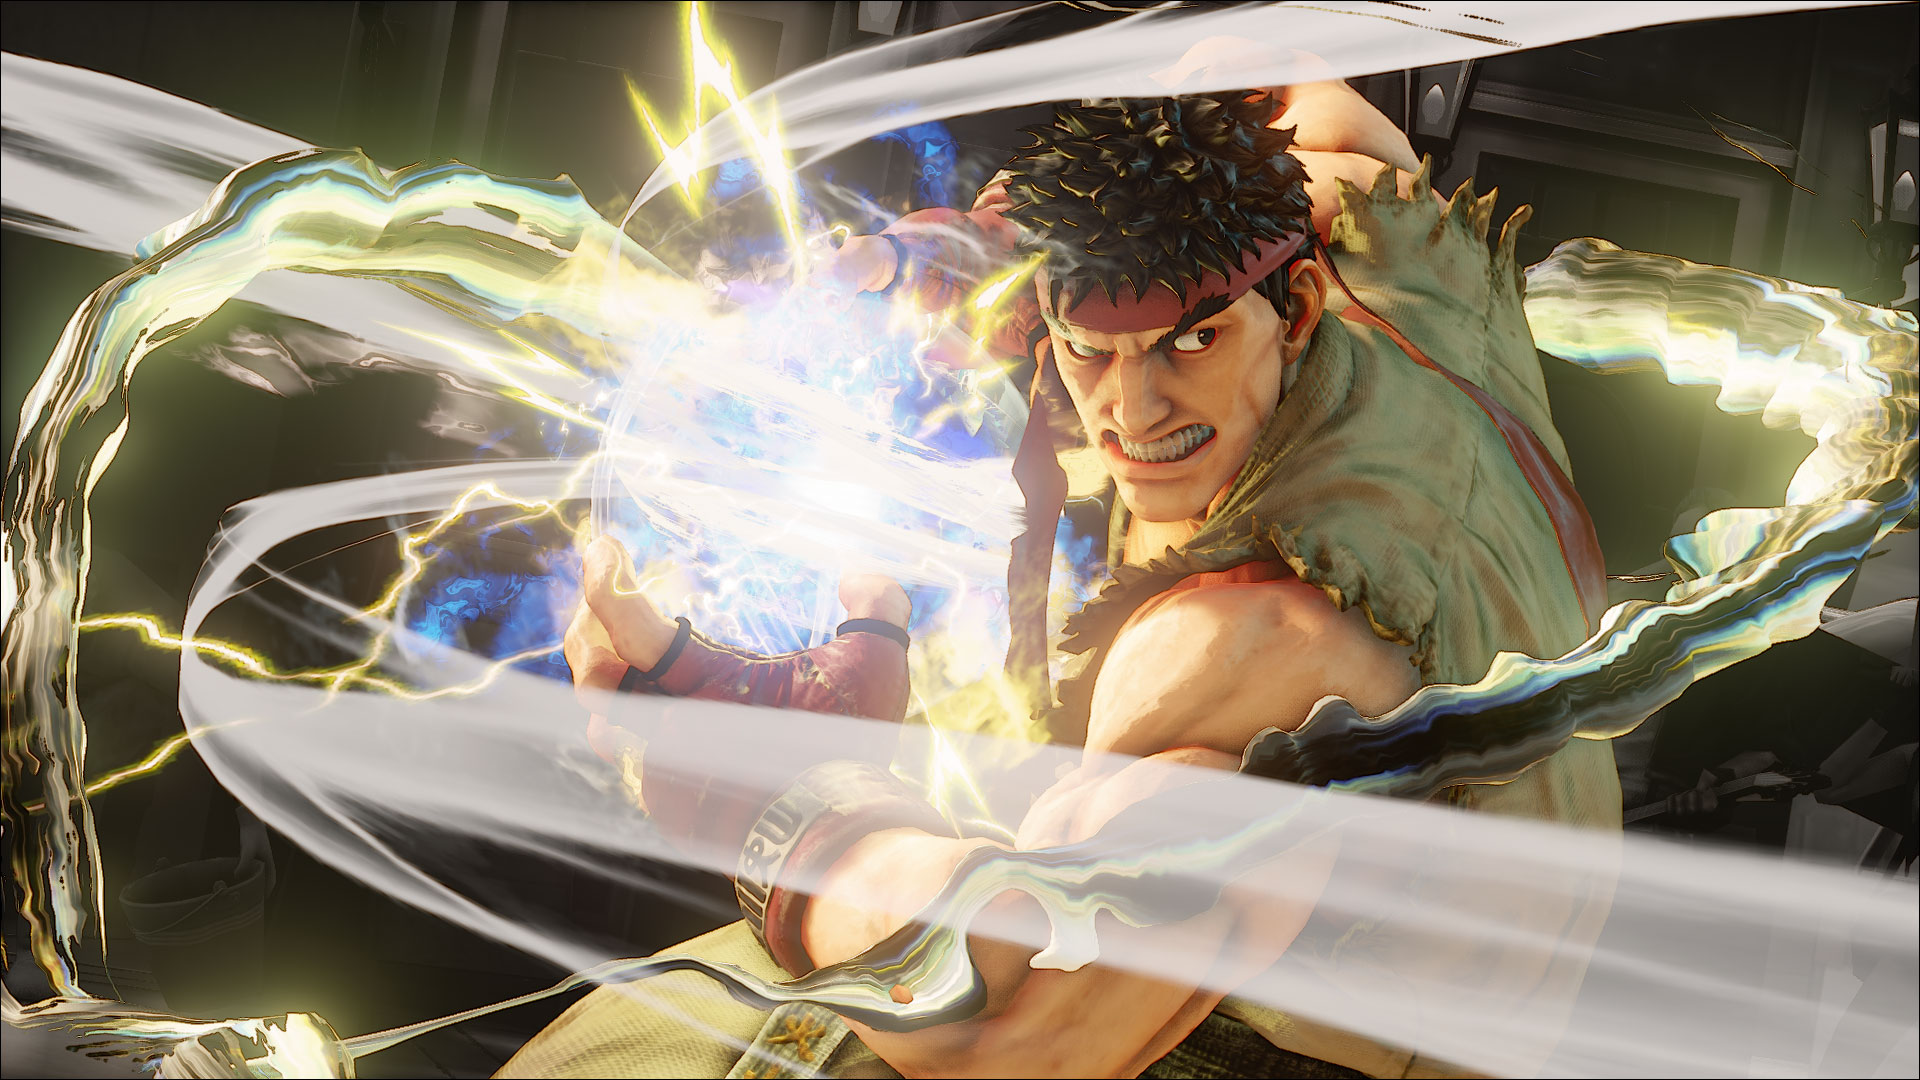 Play Street Fighter V Free, Including Season 3's DLC Characters, Next Month